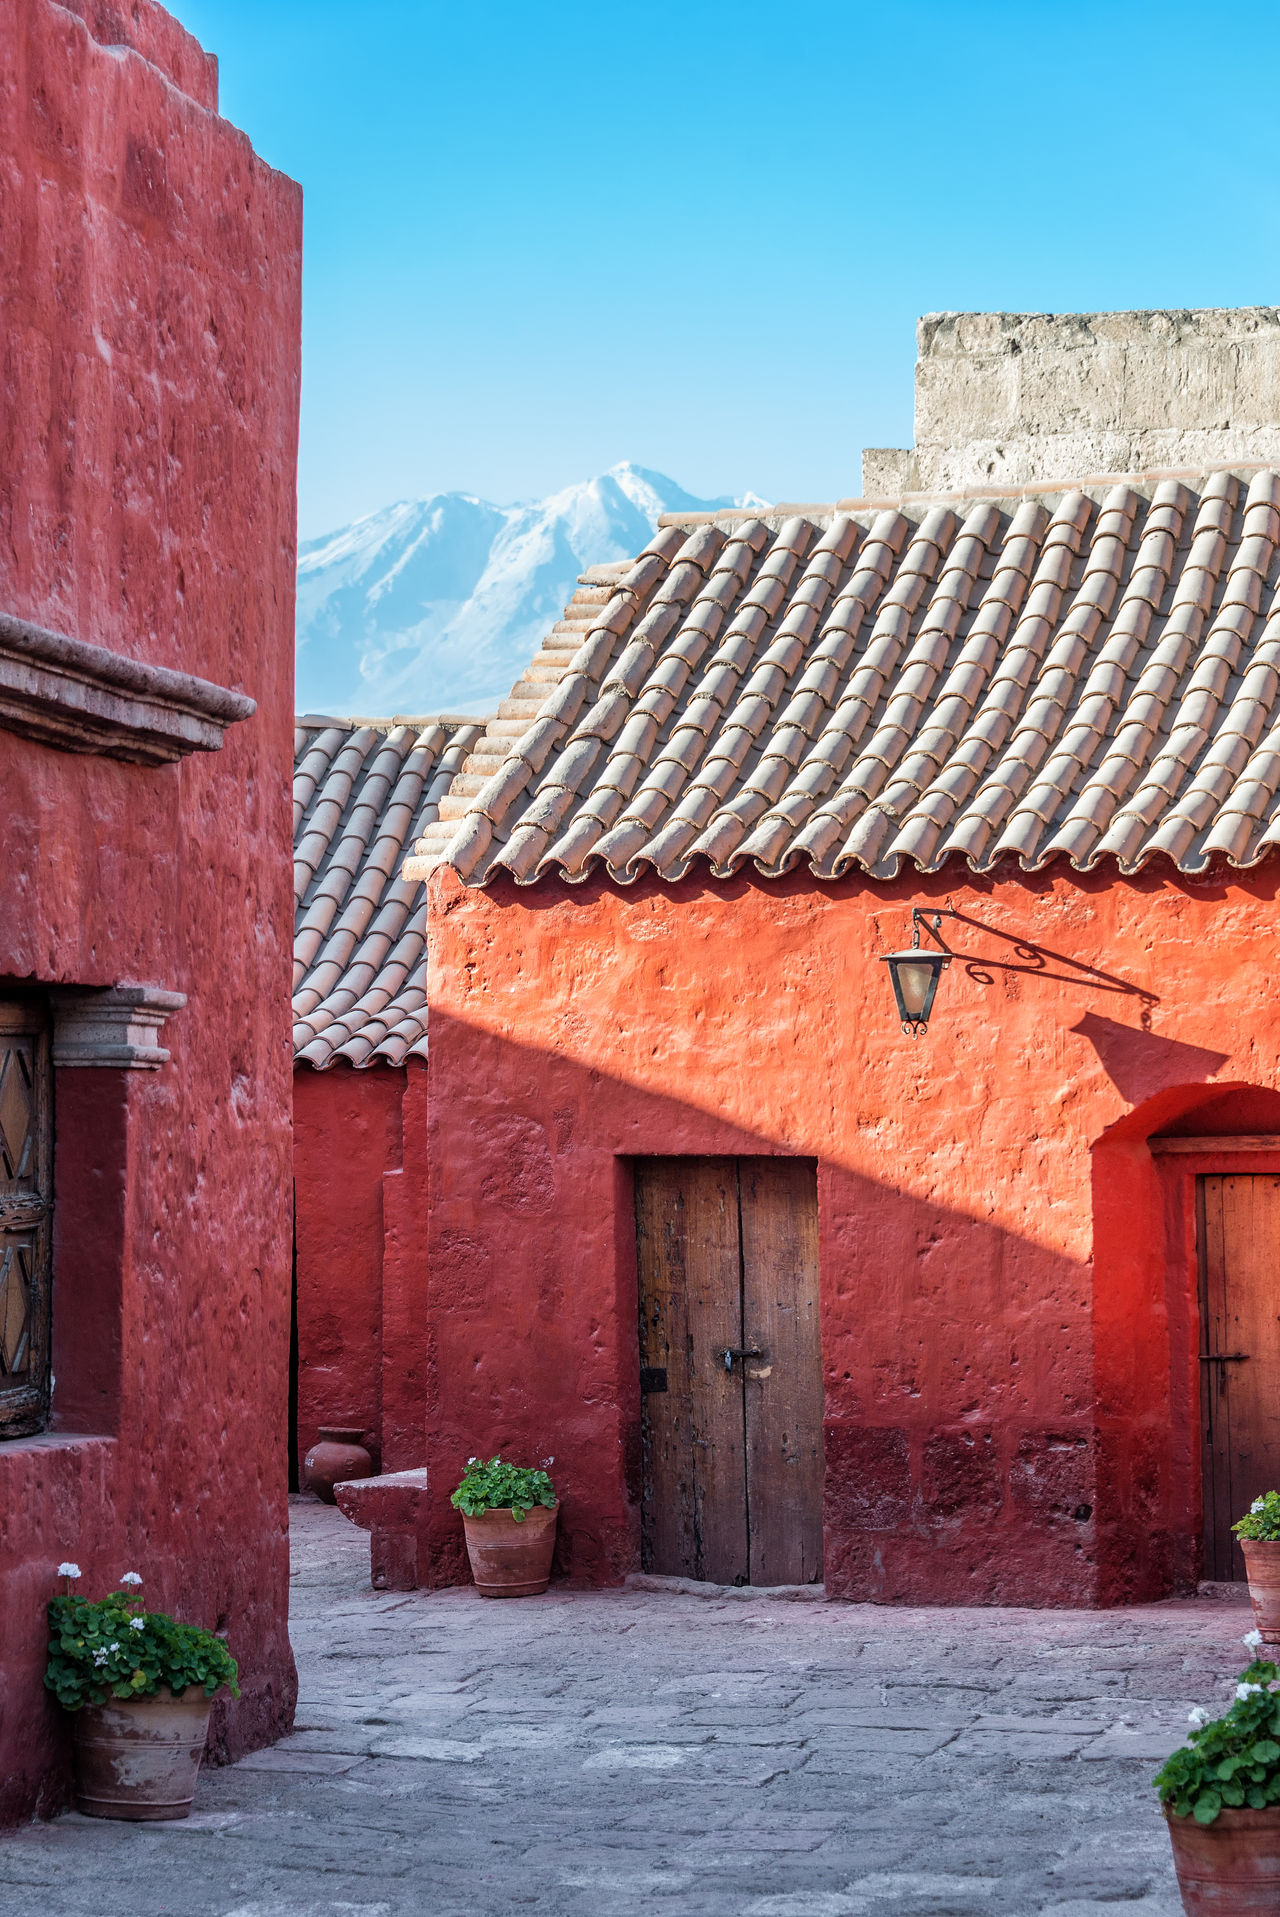 Beautiful red colonial architecture of Santa Catalina Monastery with Chachani volcano in the background Architecture Arequipa Catholic Catholicism Chachani Chachani Volcano Colonial Colonial Architecture Convent Door Doors Flower Flowers Historic Interior Monastery Mountain Peru Relaxing Religion Santa Catalina Santa Catalina Monastery Volcano